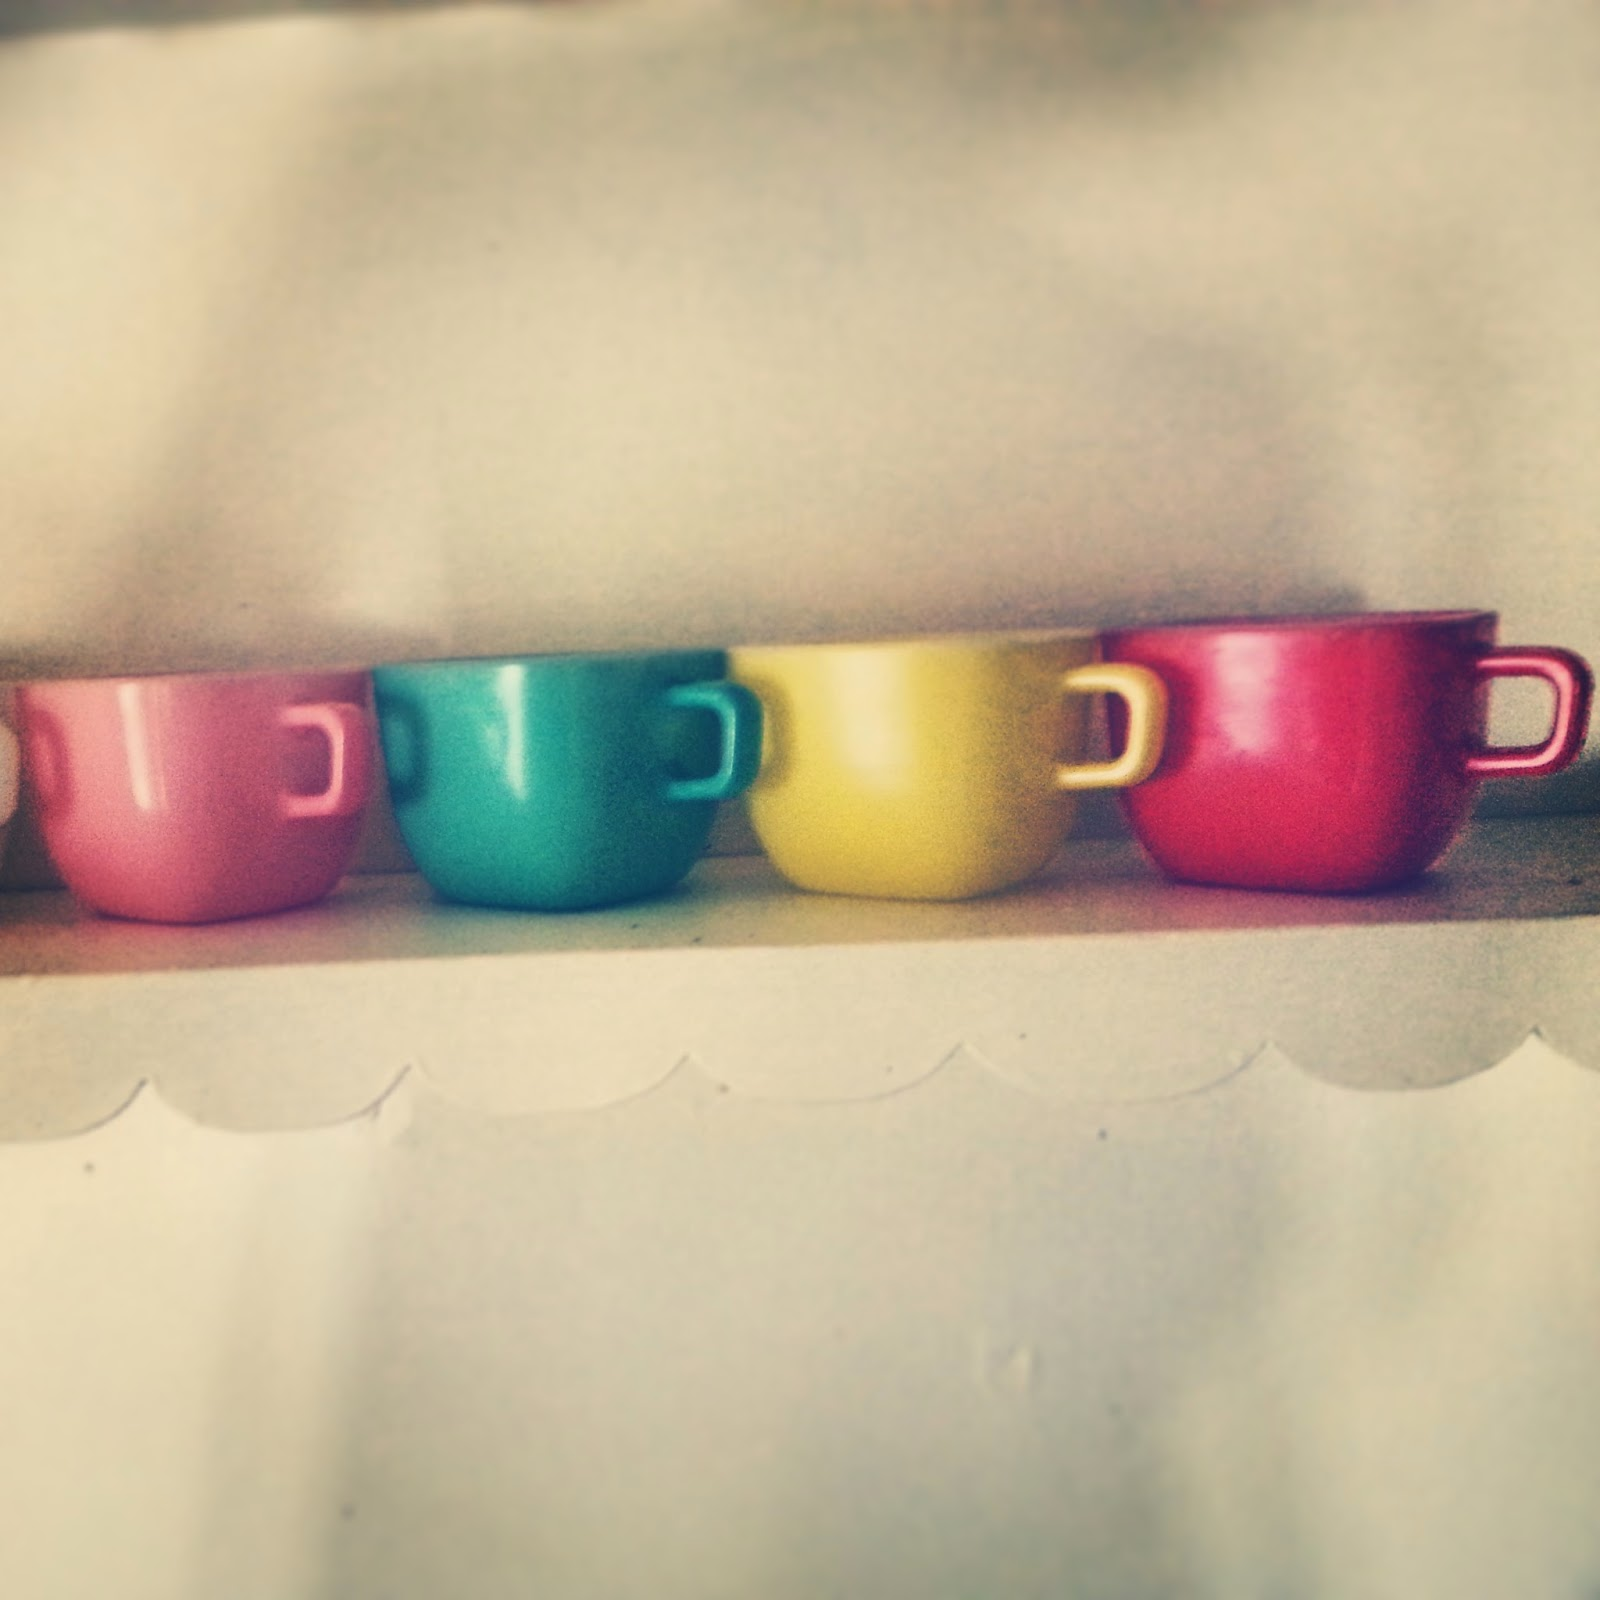 https://www.etsy.com/listing/186448440/retro-square-cups-rainbow-glasbake-set?ref=shop_home_active_14